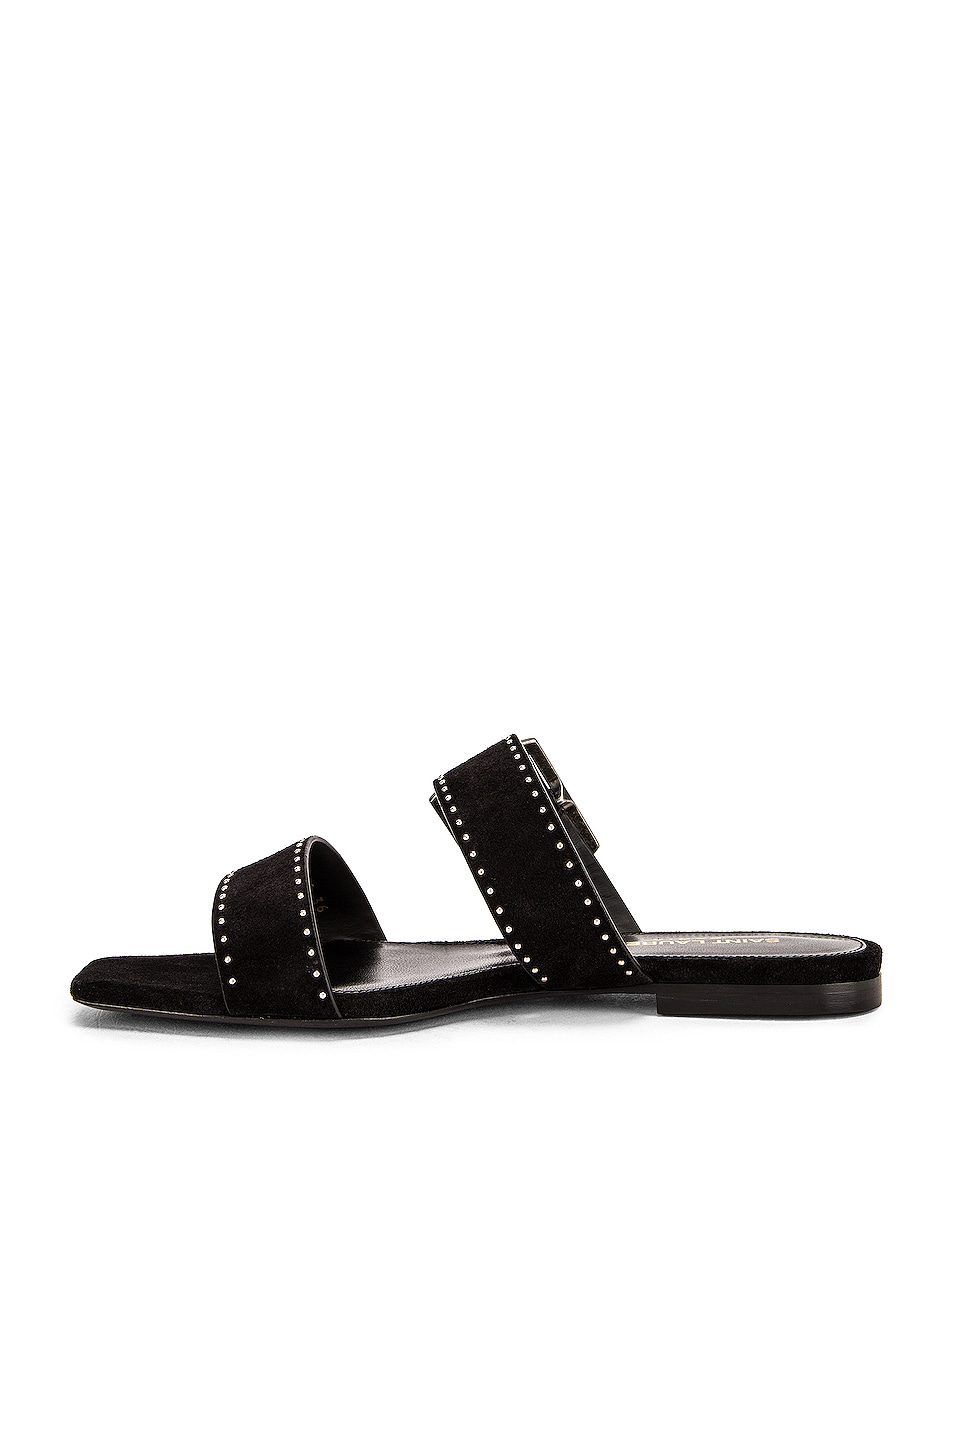 Image 5 of Saint Laurent Oak Buckle Sandals in Black